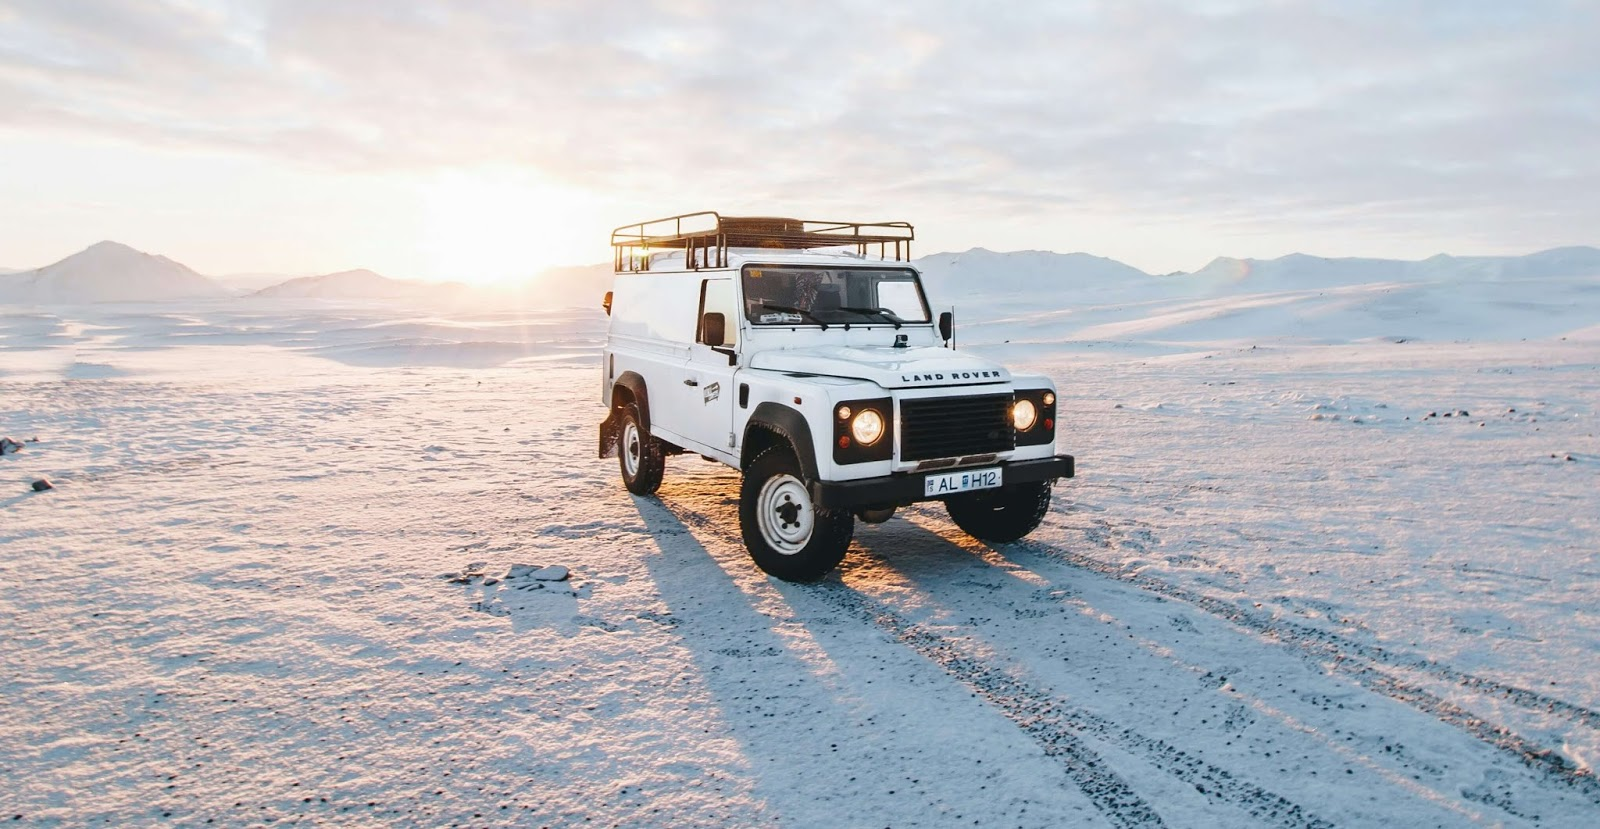 How to do off roading on snow | Everything you should know before snow off roading